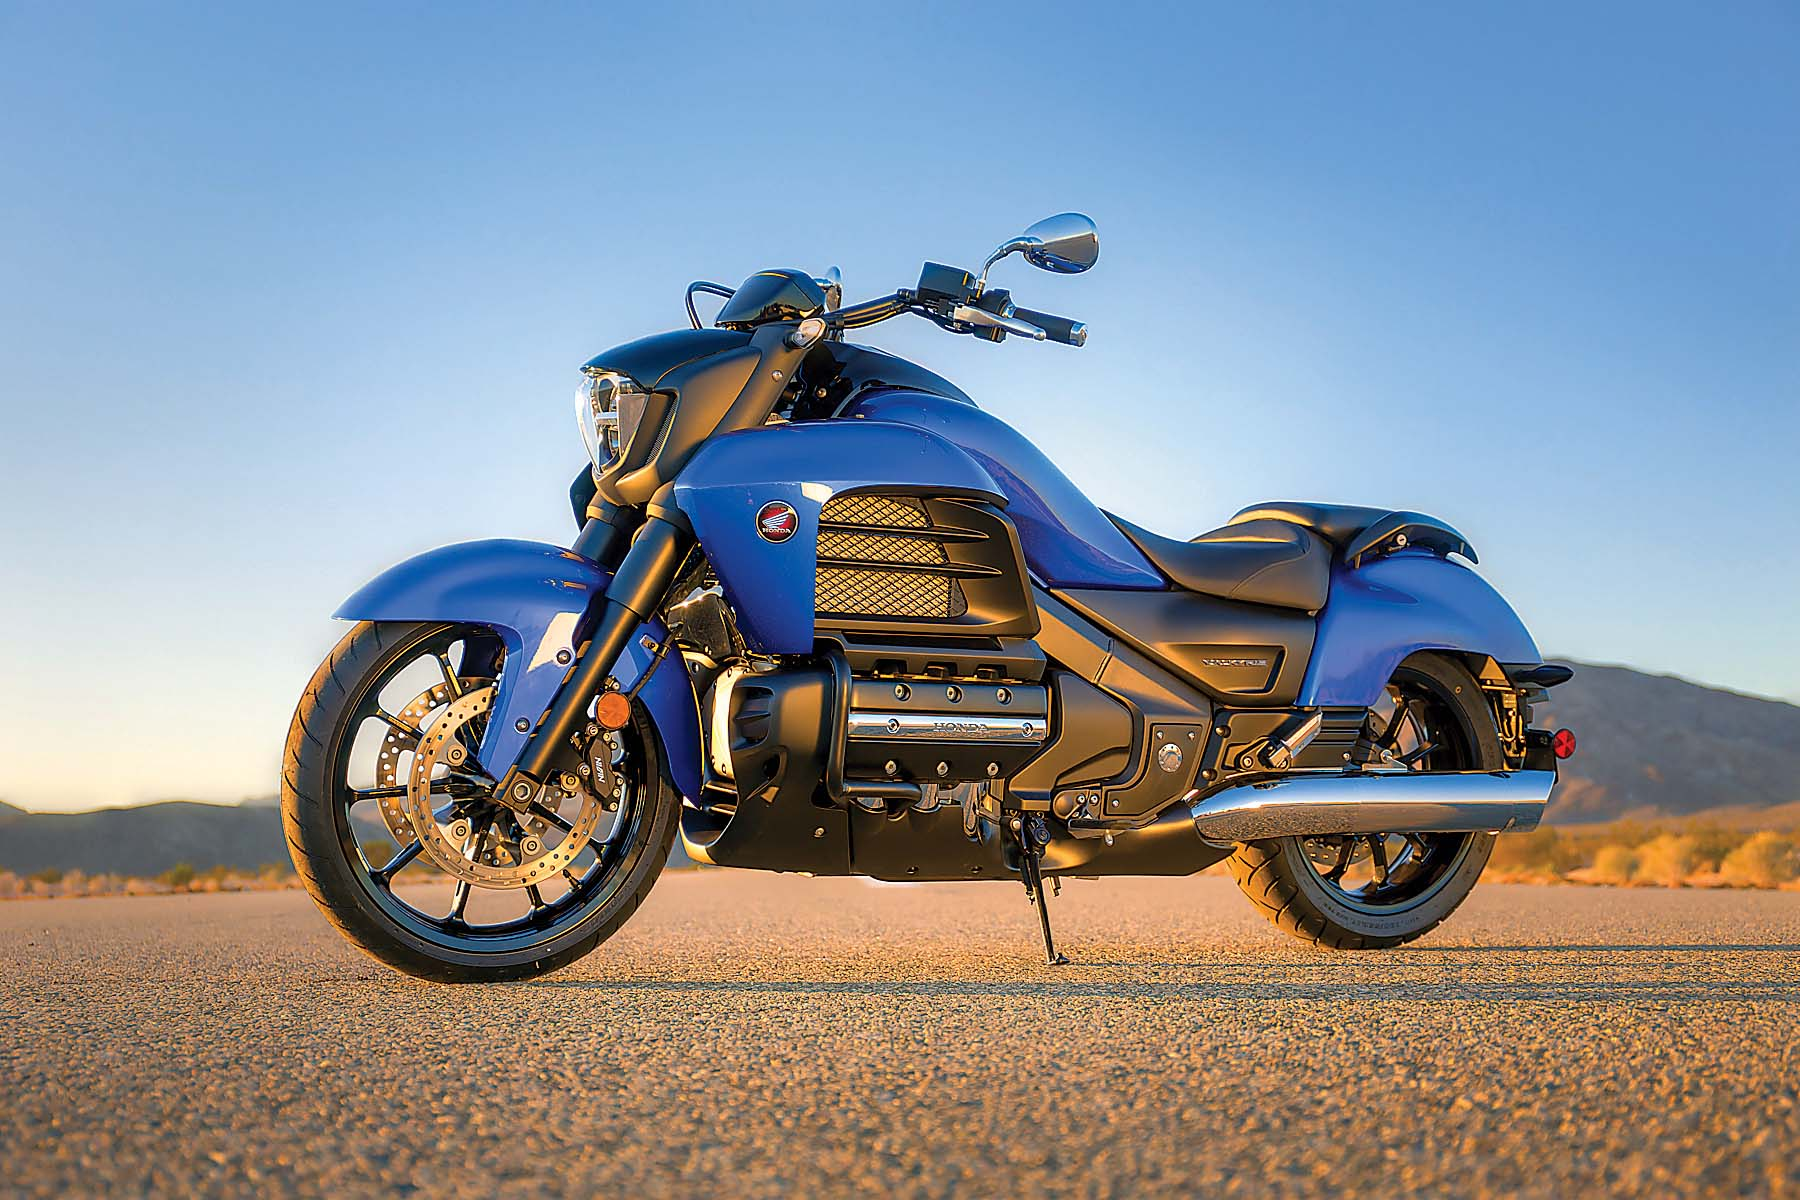 2018 Honda Valkyrie >> 2014 Honda Valkyrie - Your Valhalla of Power Cruisers? - Asphalt & Rubber